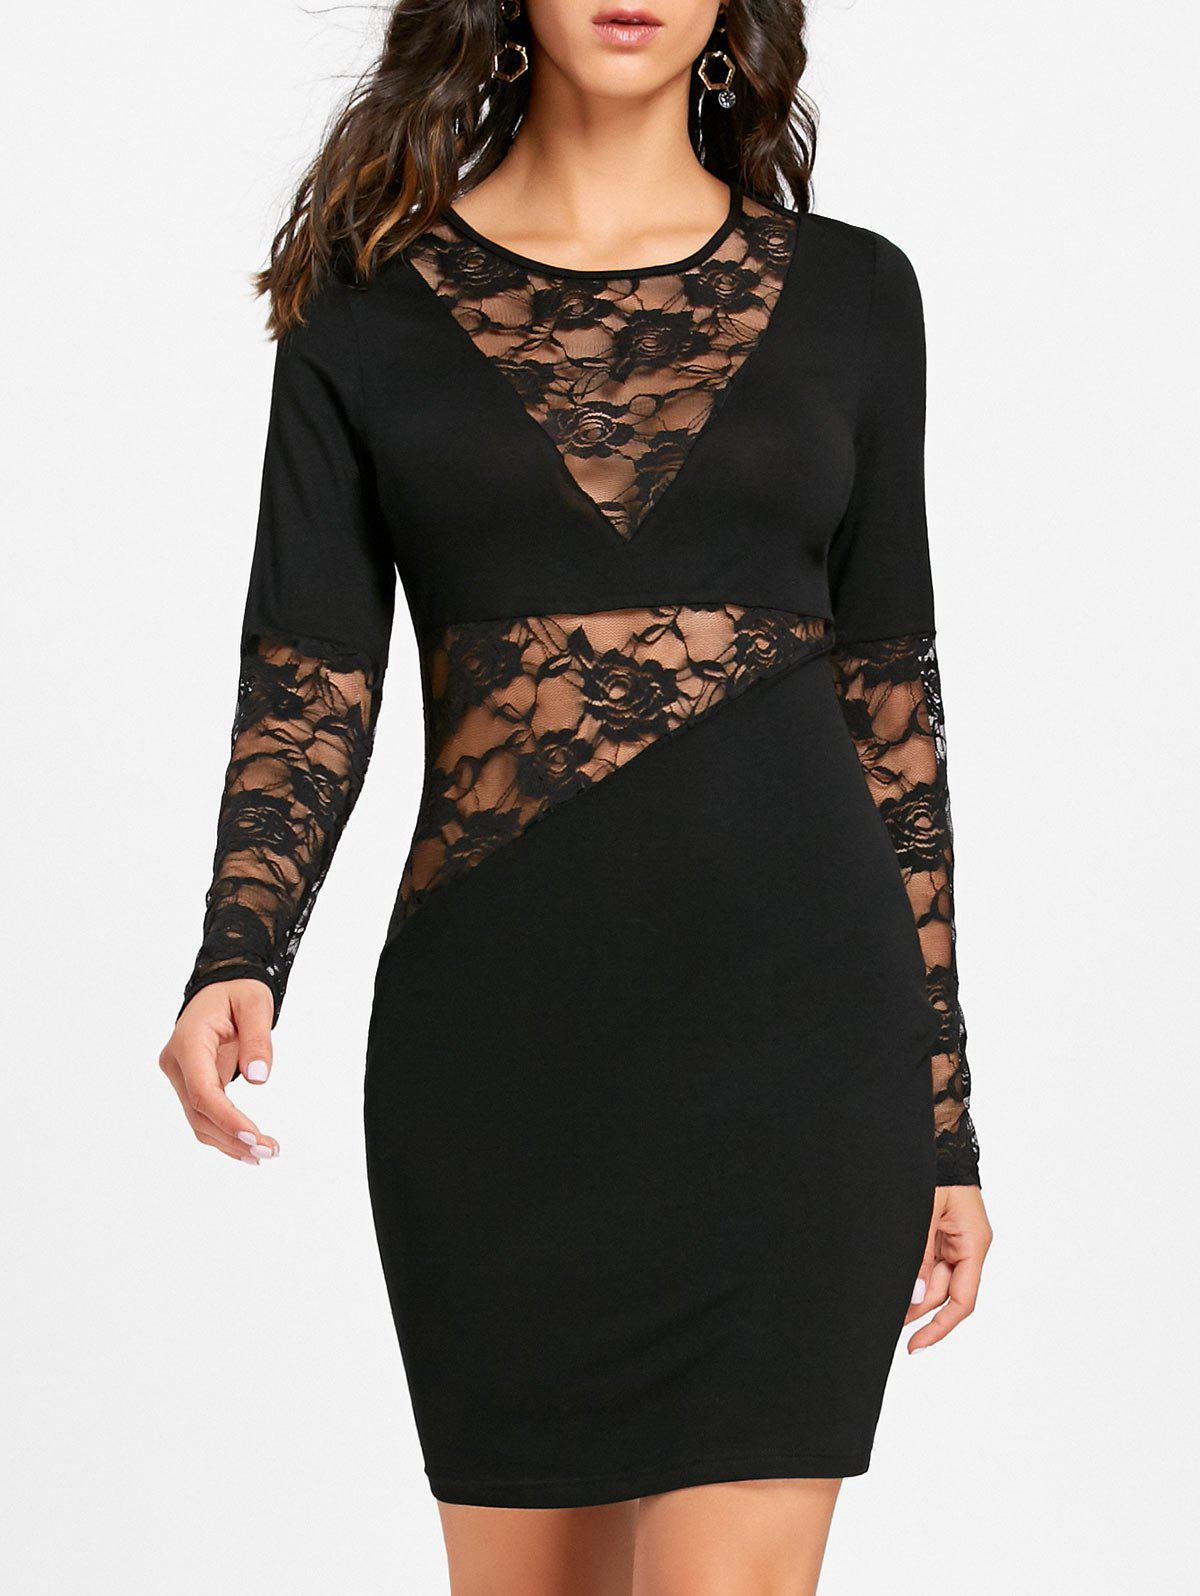 Sheer Lace Insert Long Sleeve Bodycon Dress long sleeve lace insert mini dress